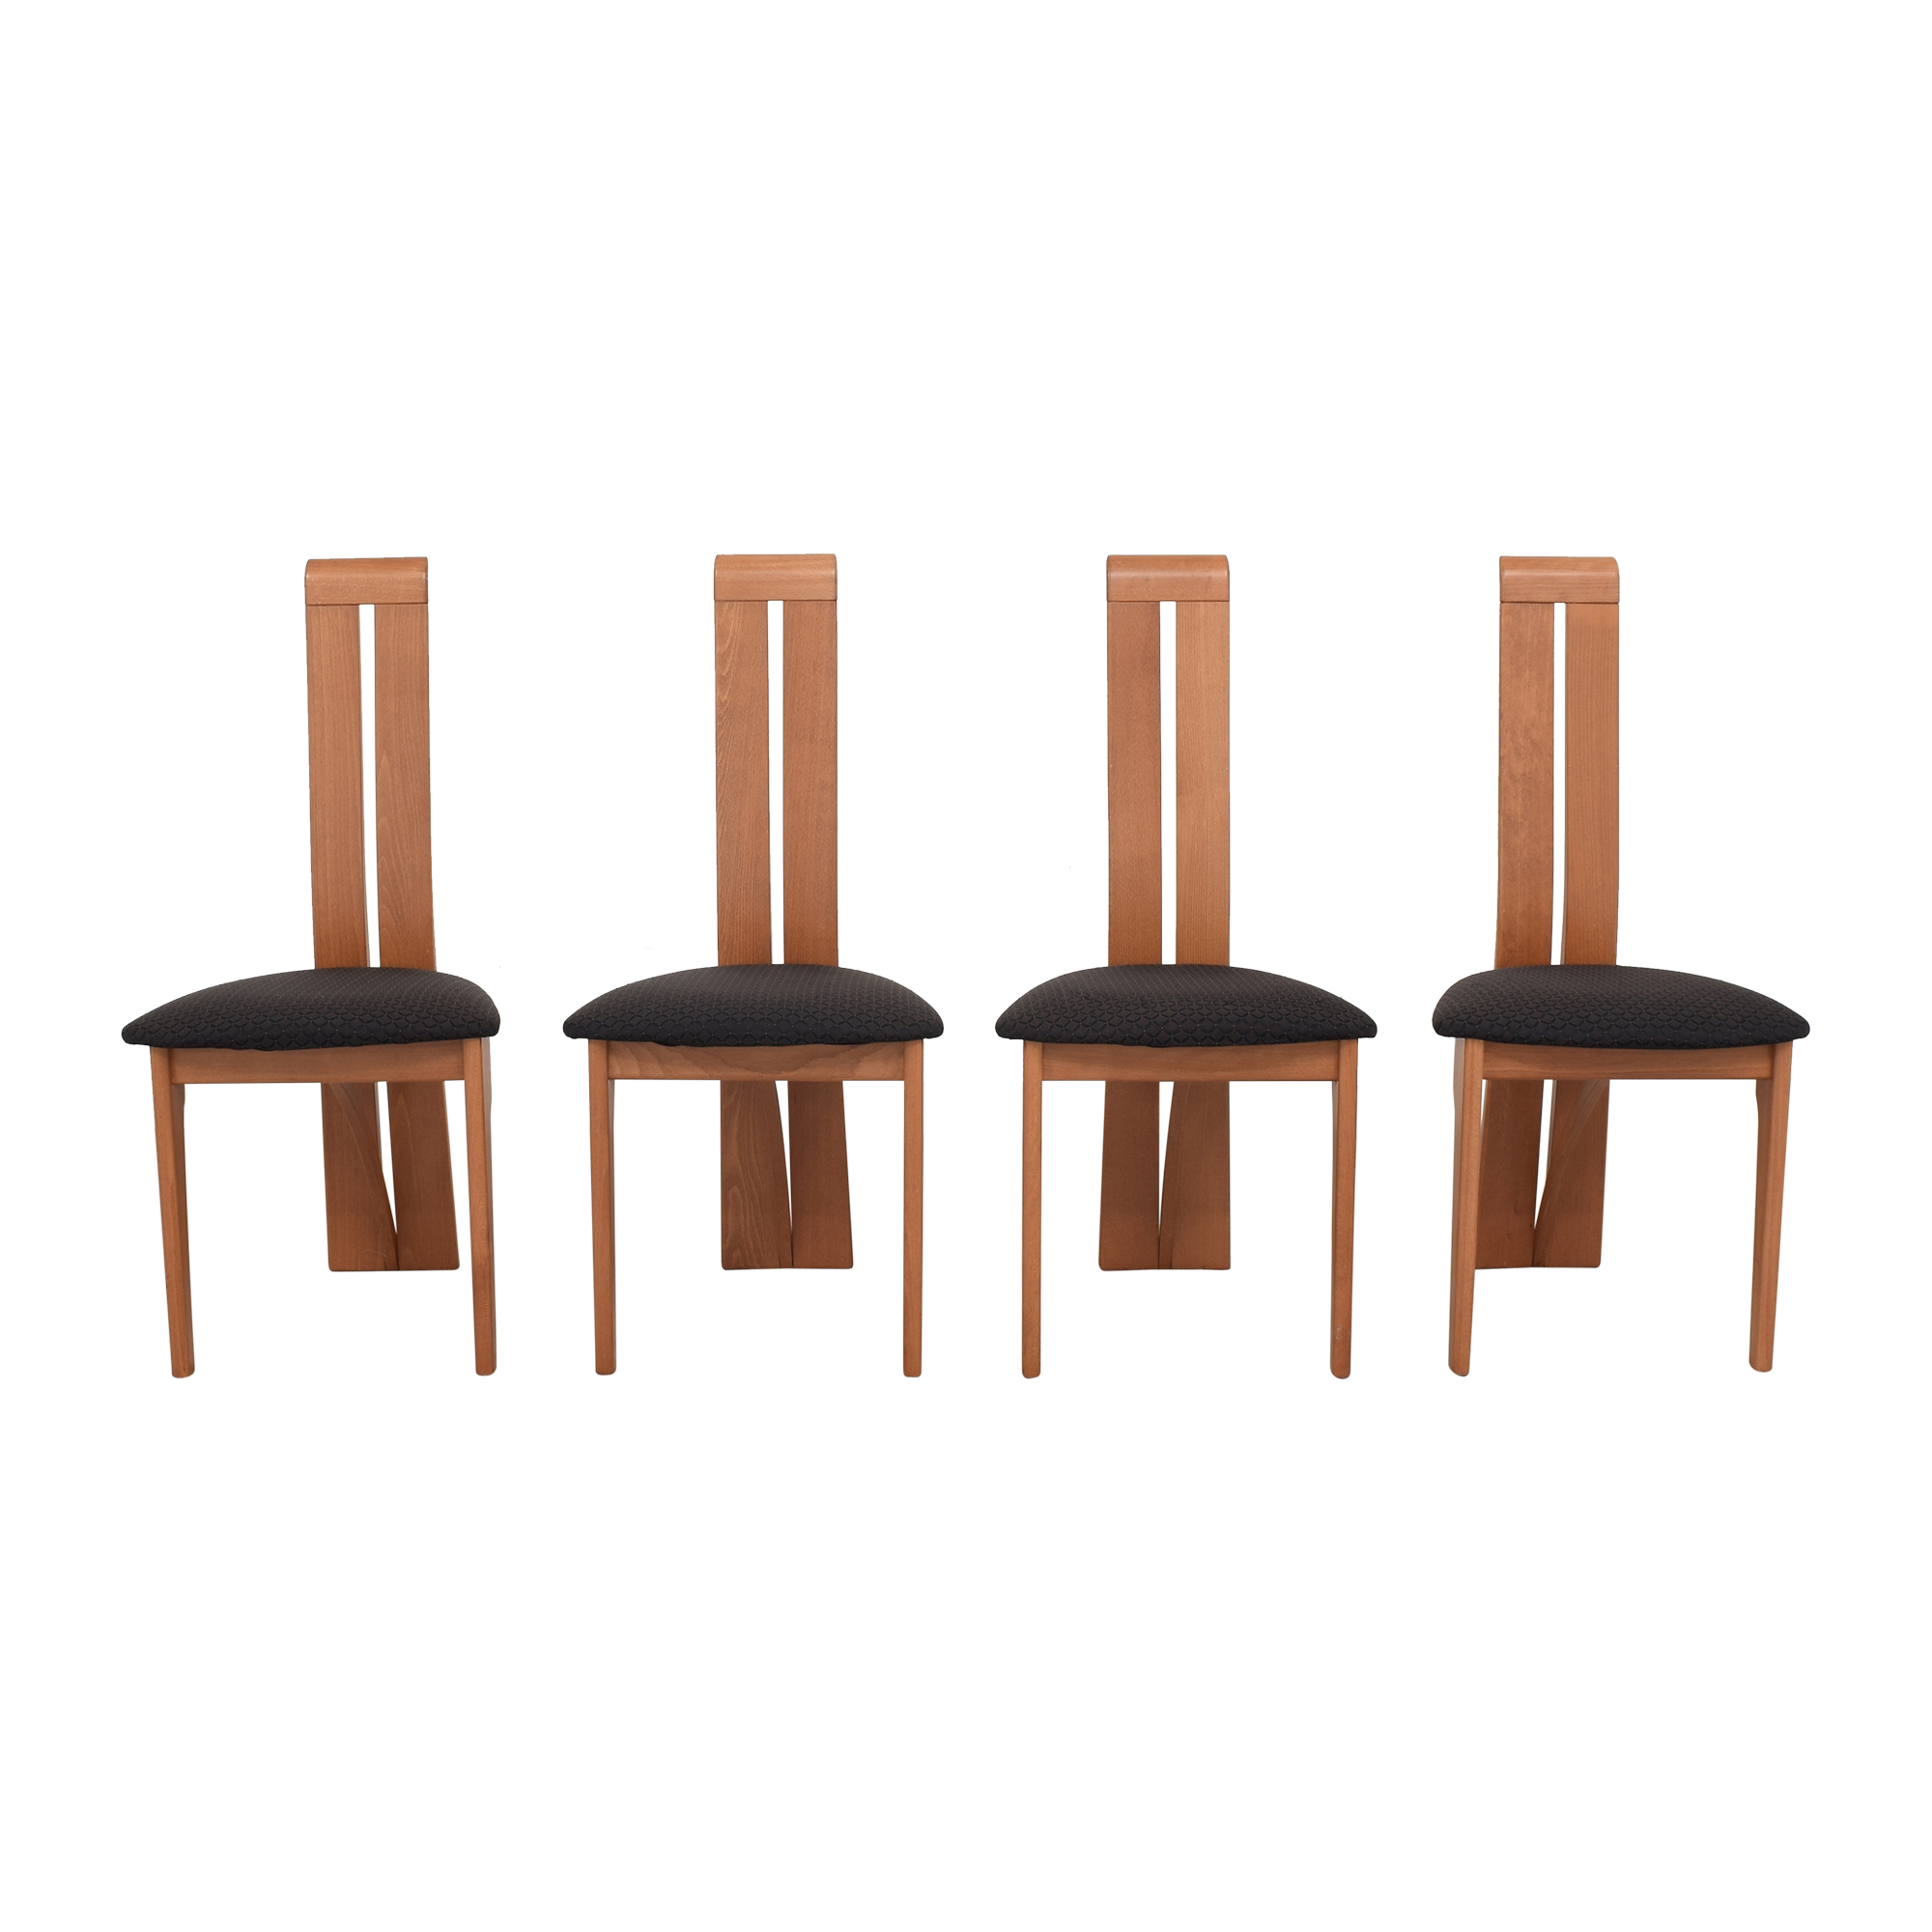 Ello Pietro Constantini Dining Chairs Ello Furniture